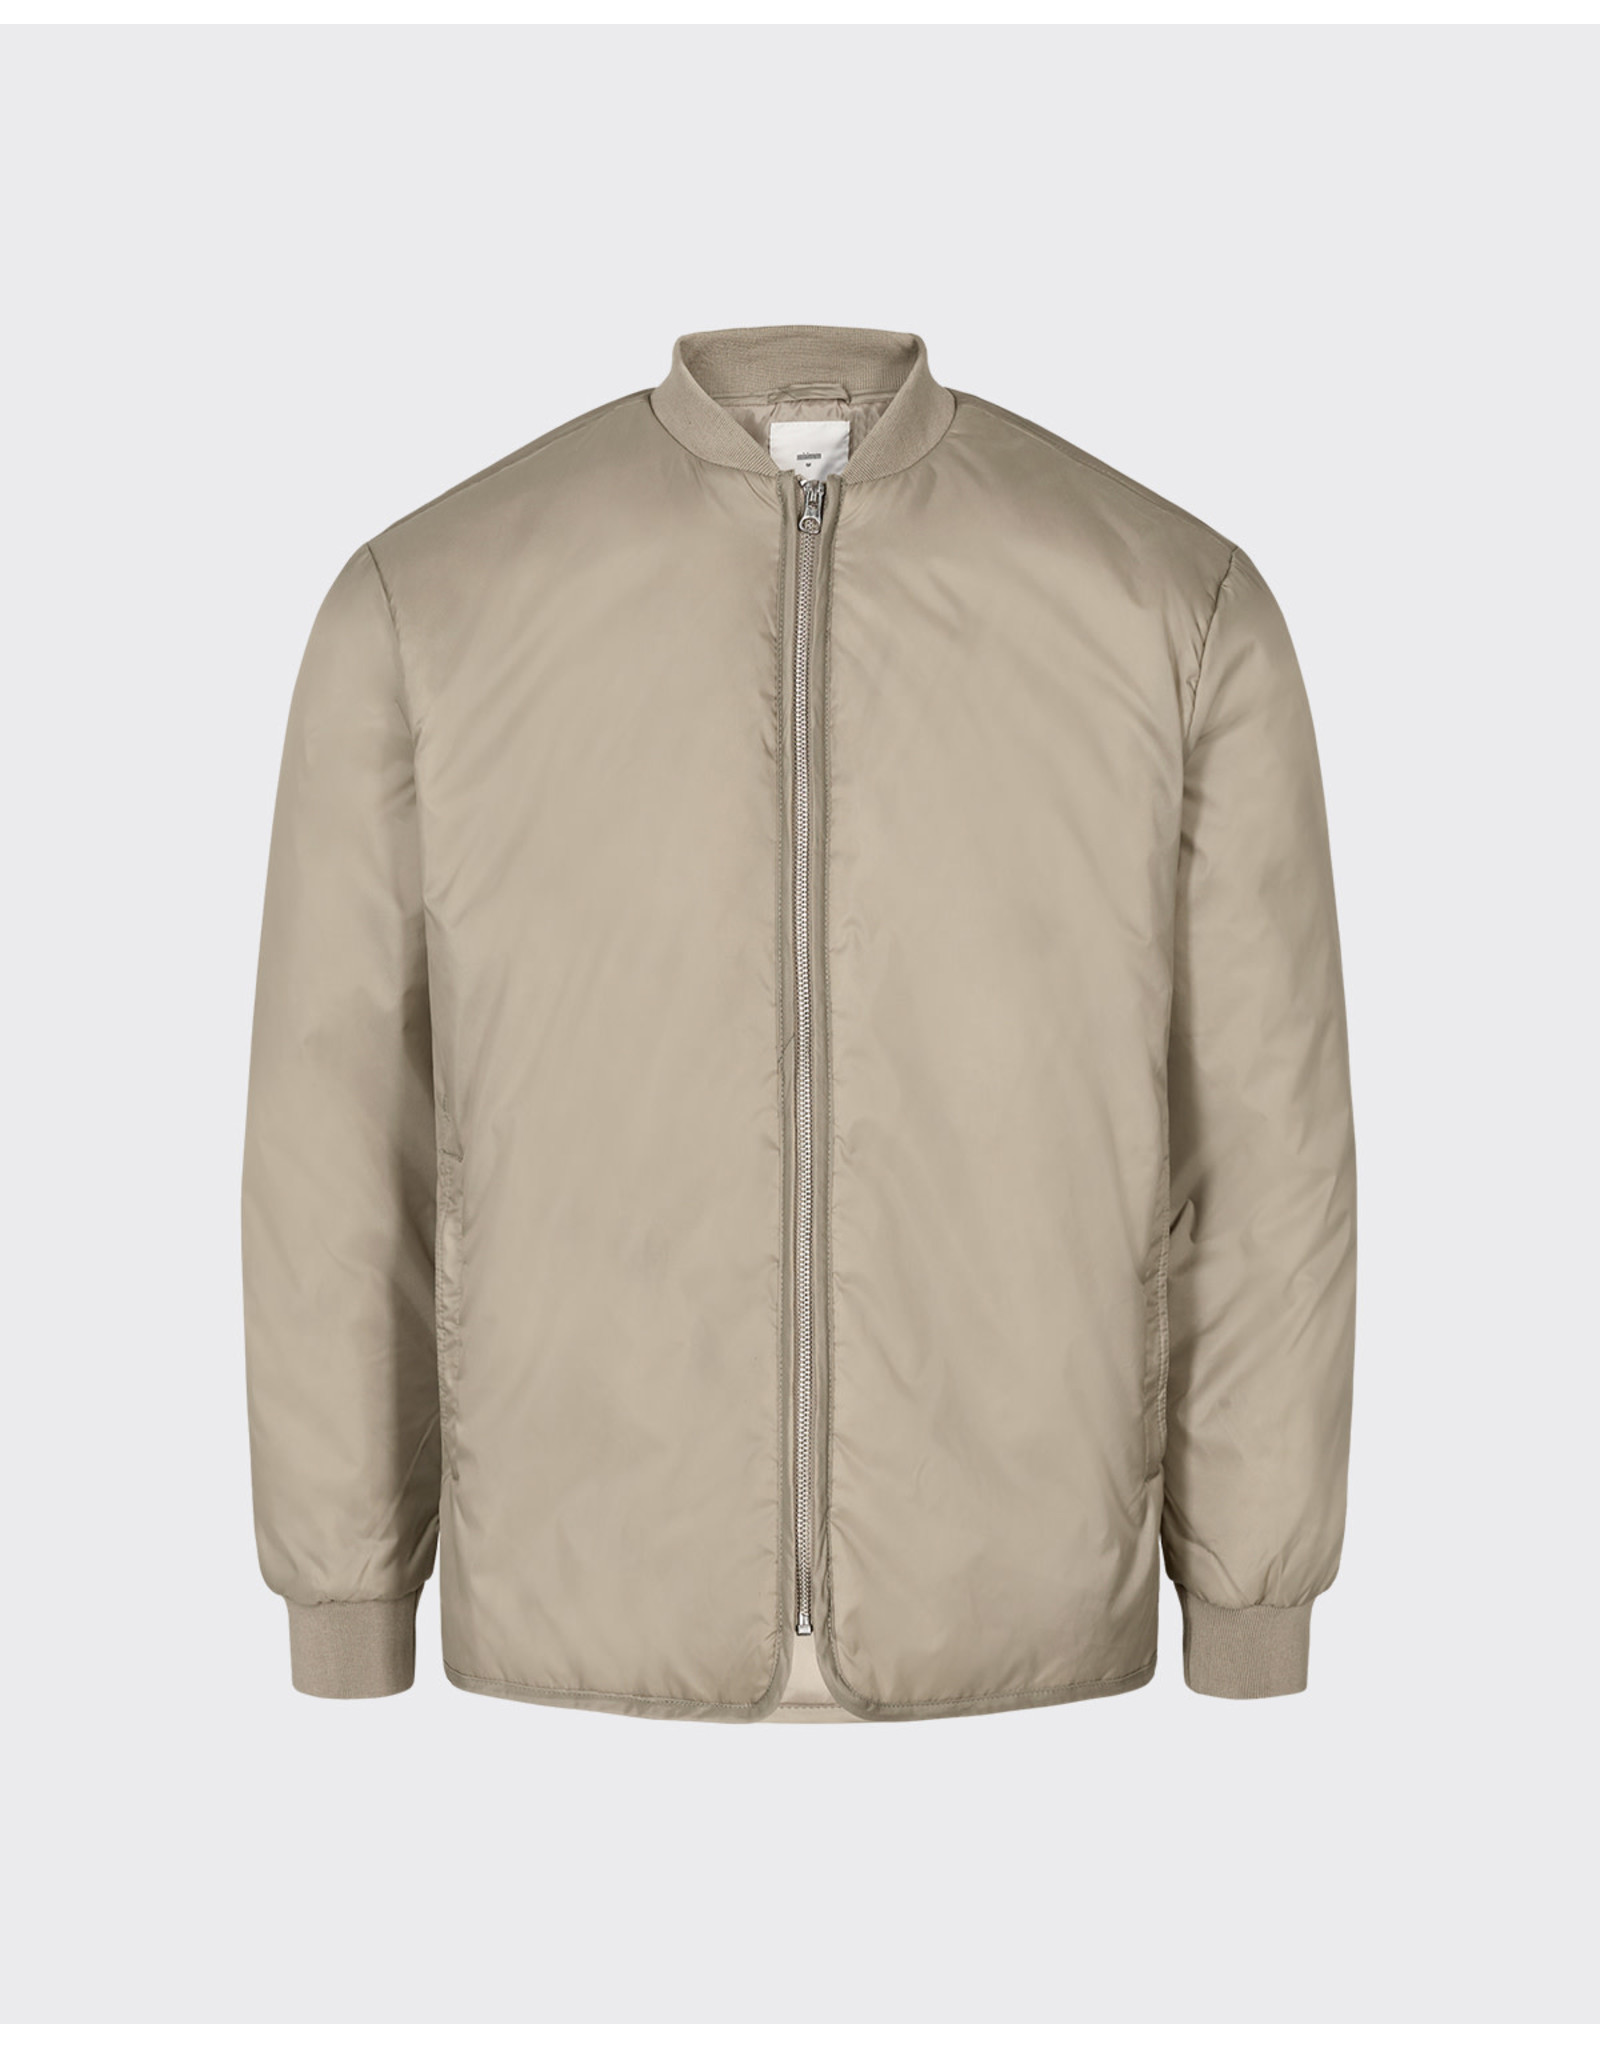 Minimum Lional Jacket